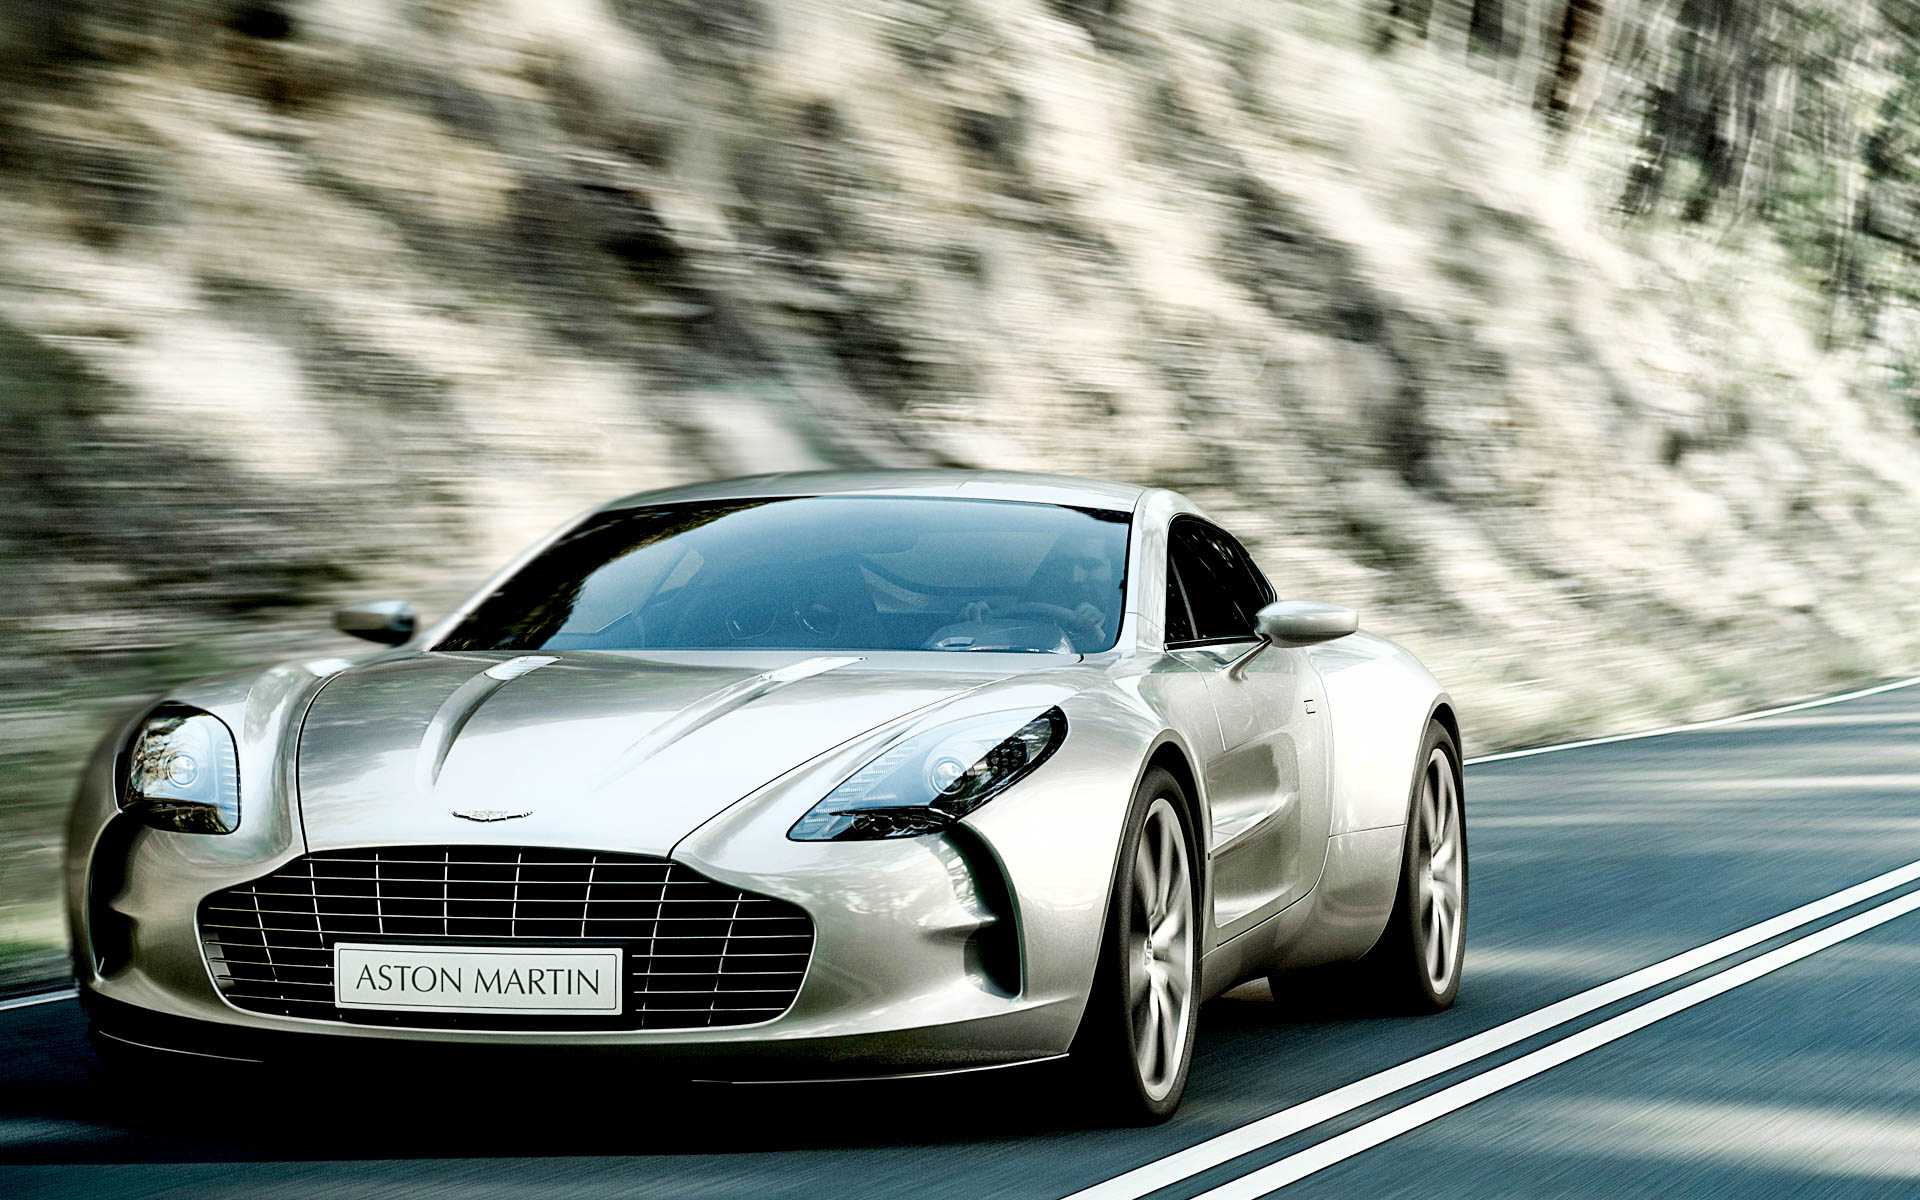 aston martin one-77 awesome hd wallpapers 2017 - all hd wallpapers